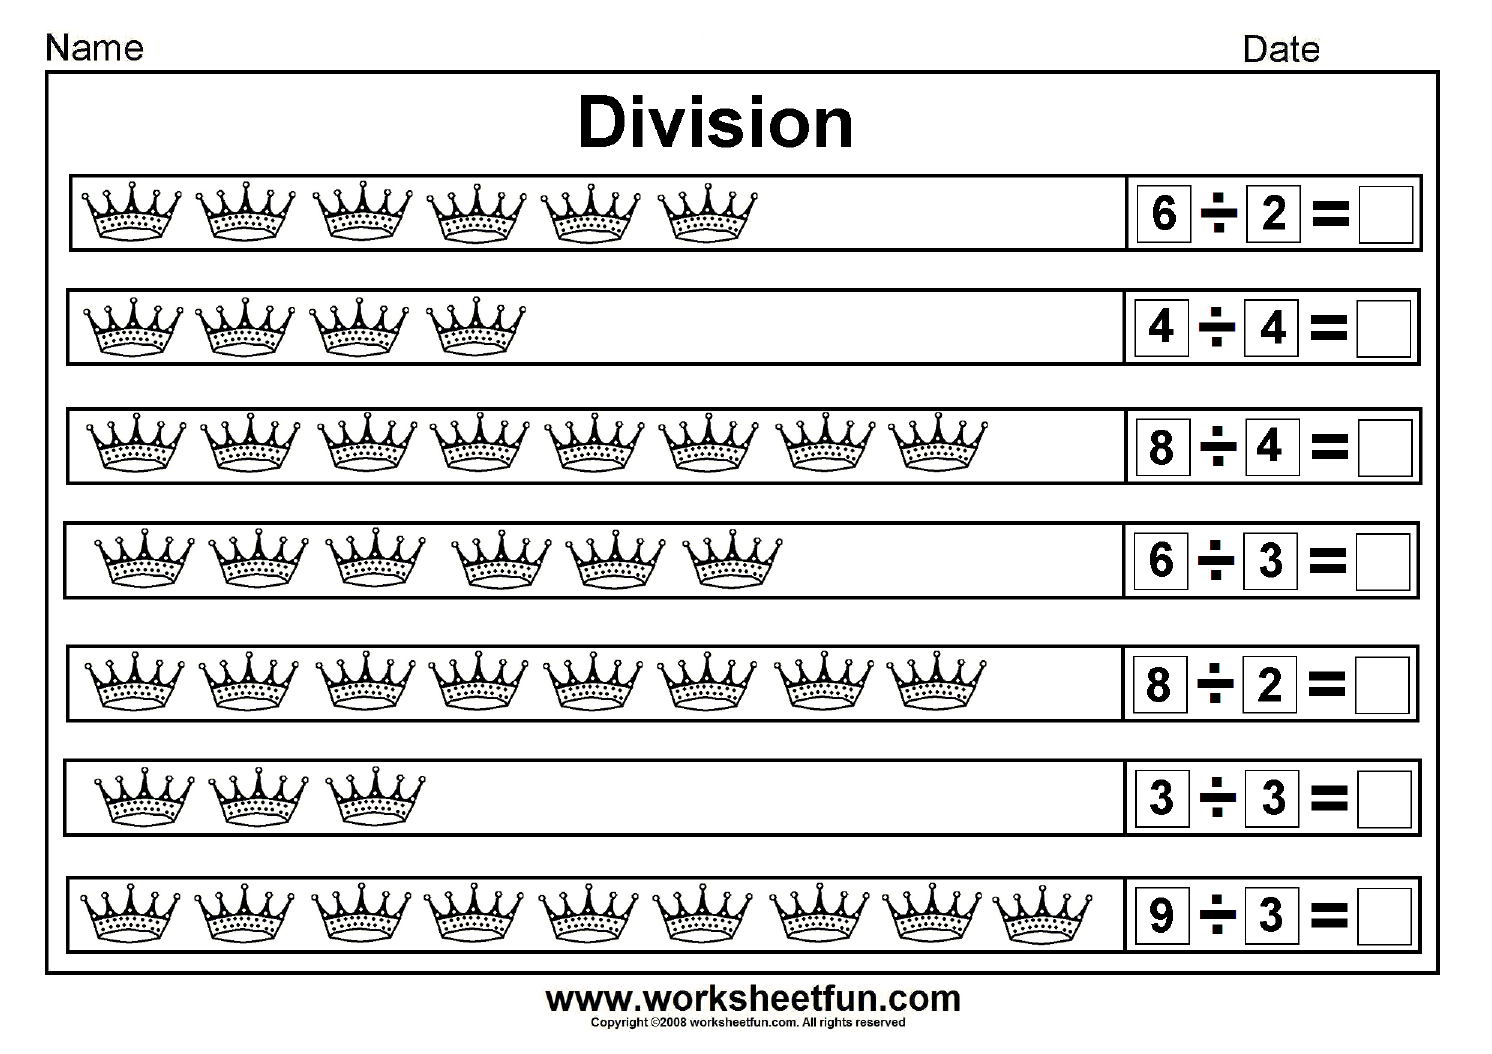 Worksheet About Division For Grade 3